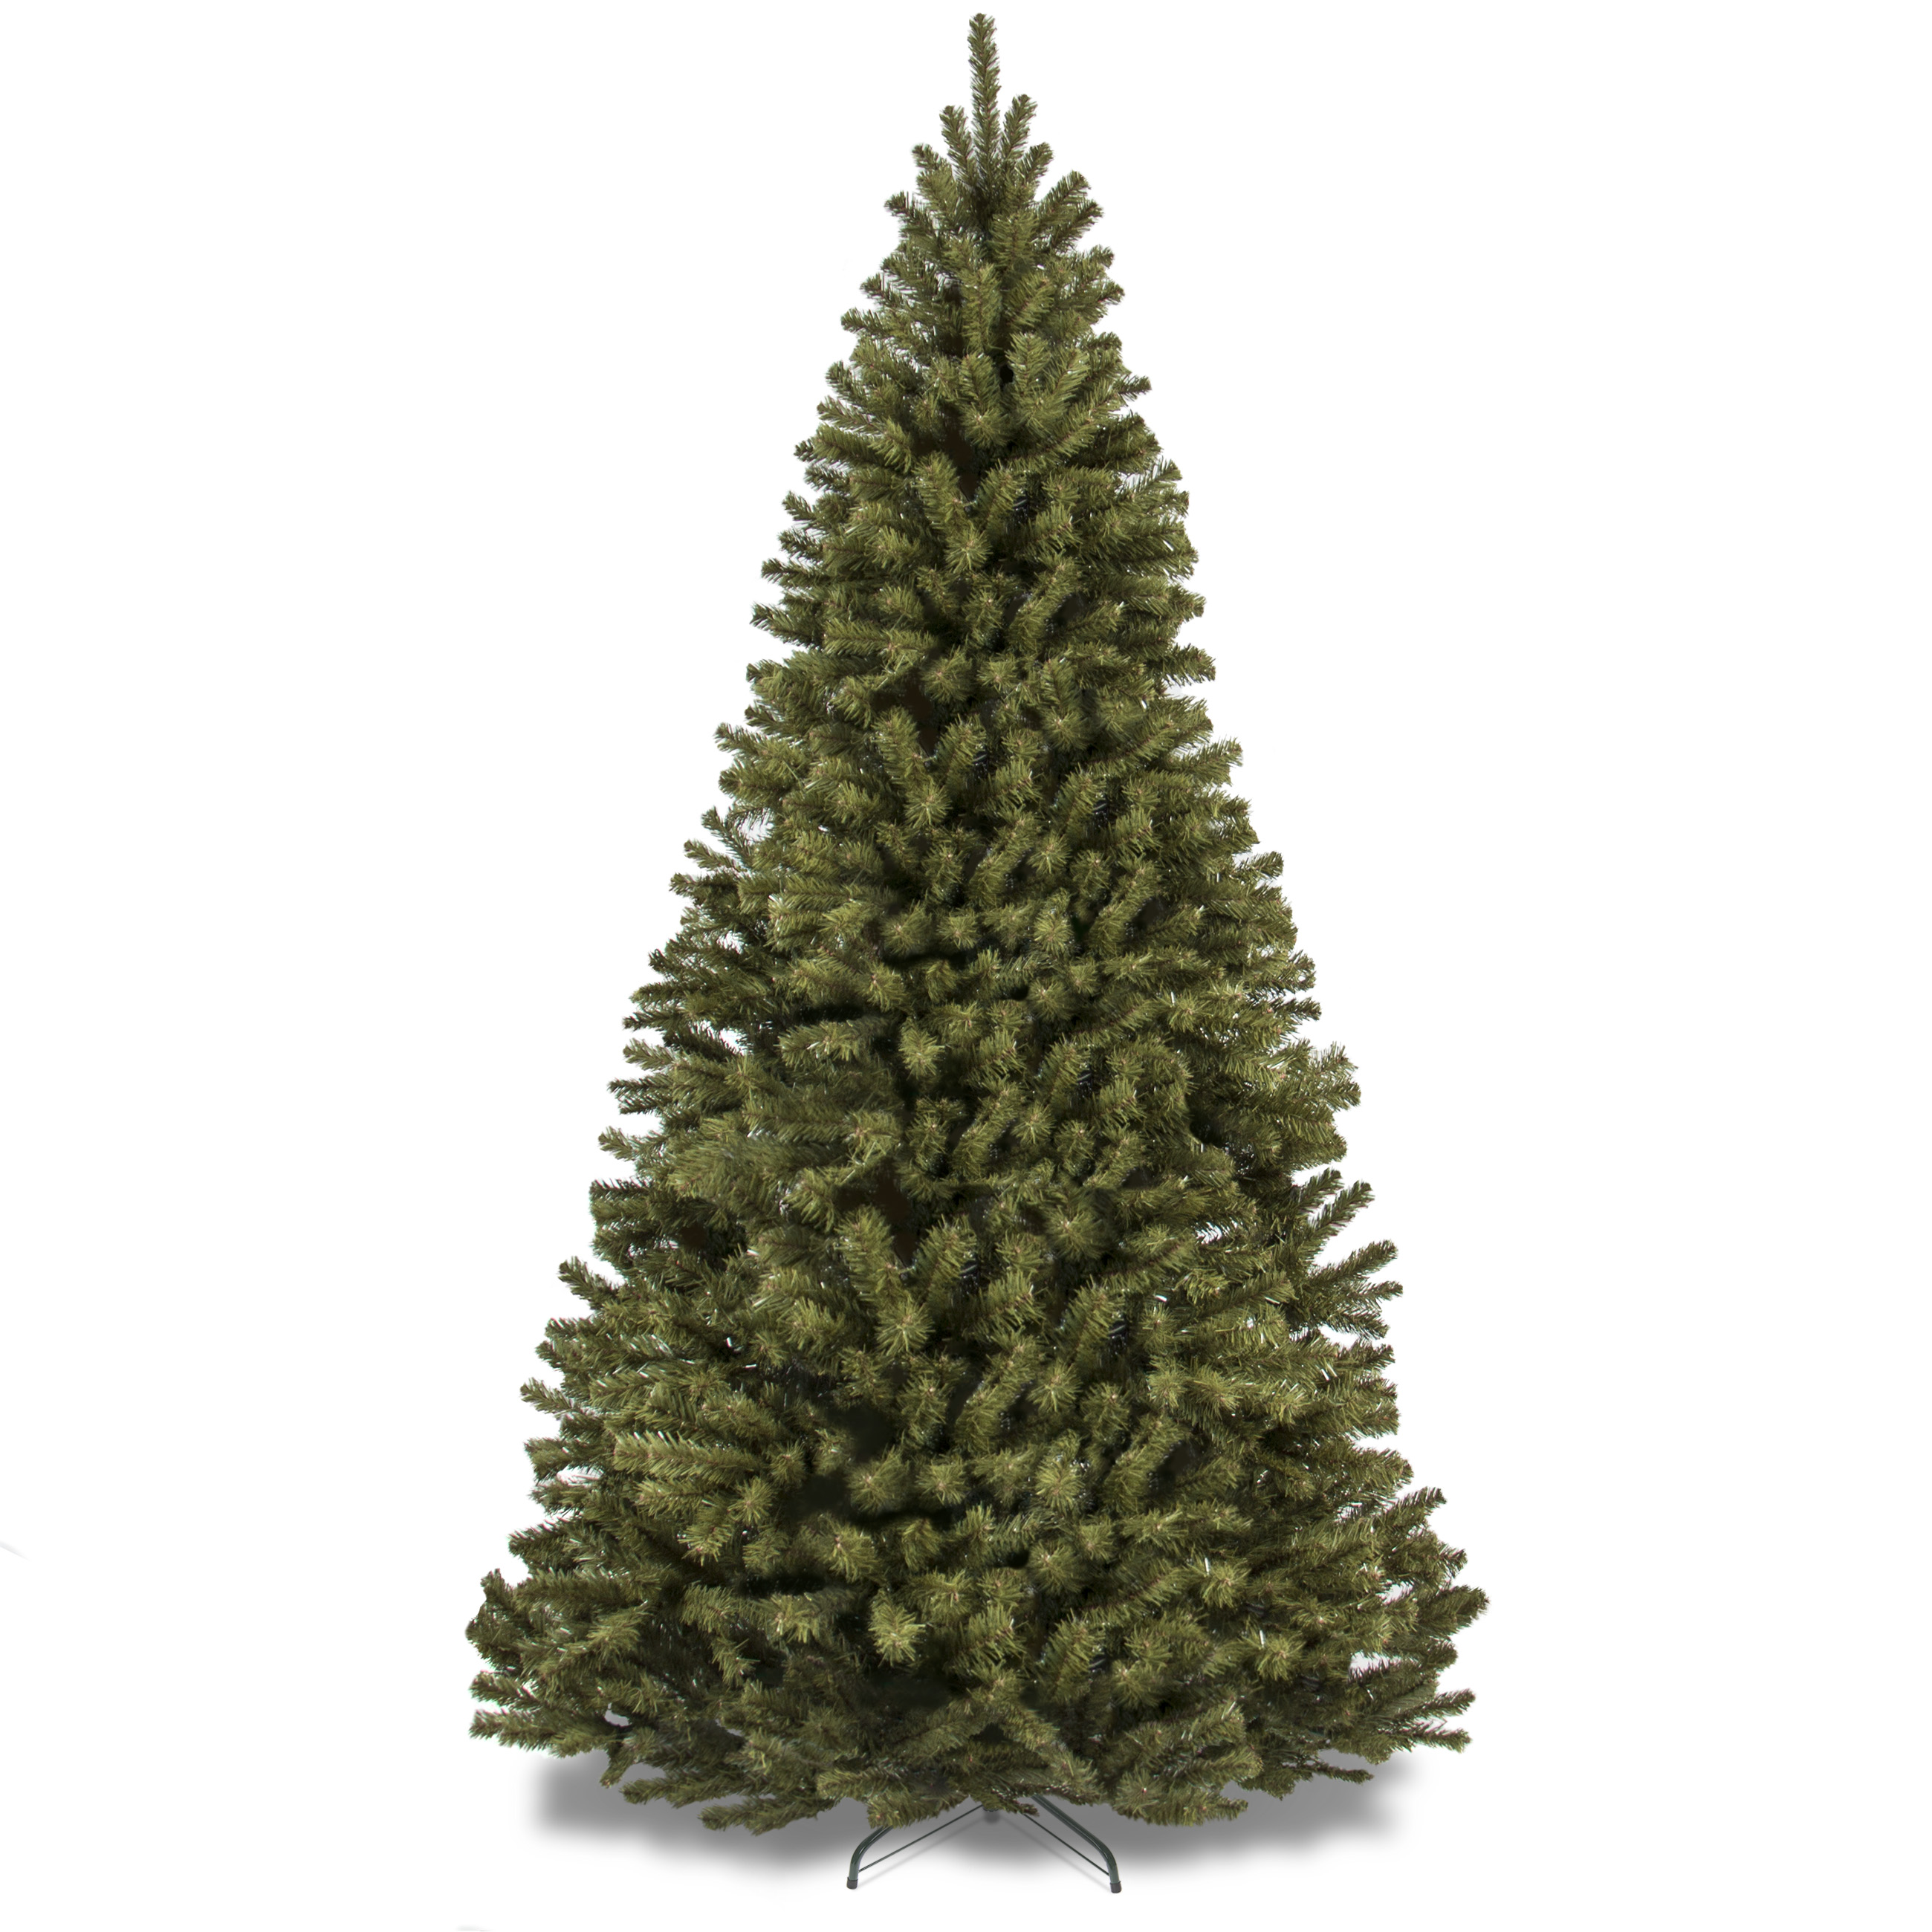 Best Choice Products 9ft Premium Spruce Hinged Artificial Christmas Tree w/ Easy Assembly, Foldable Stand - Green